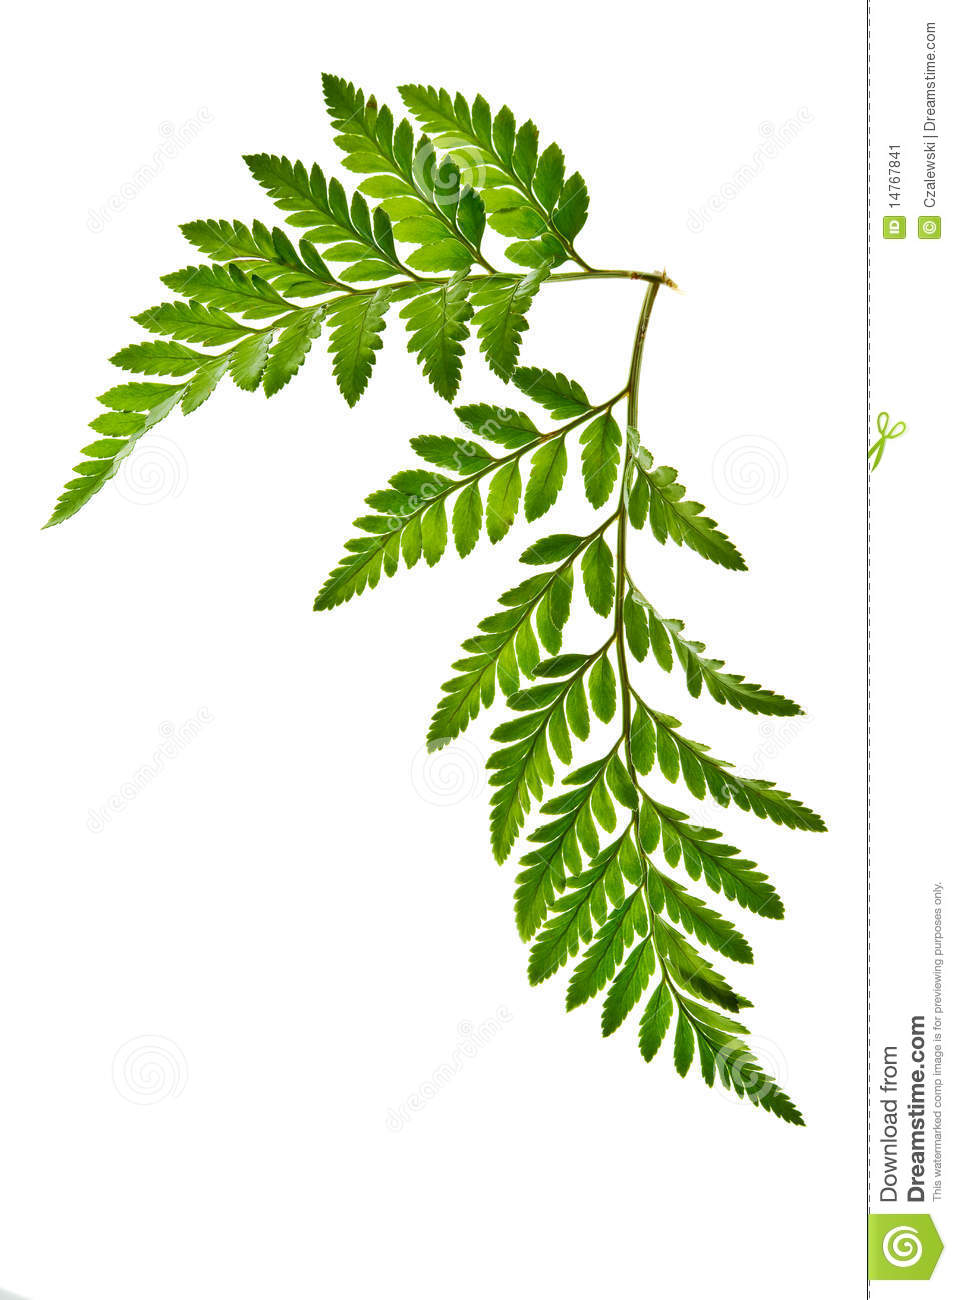 Green Fern Leaf Isolated Stock Image.